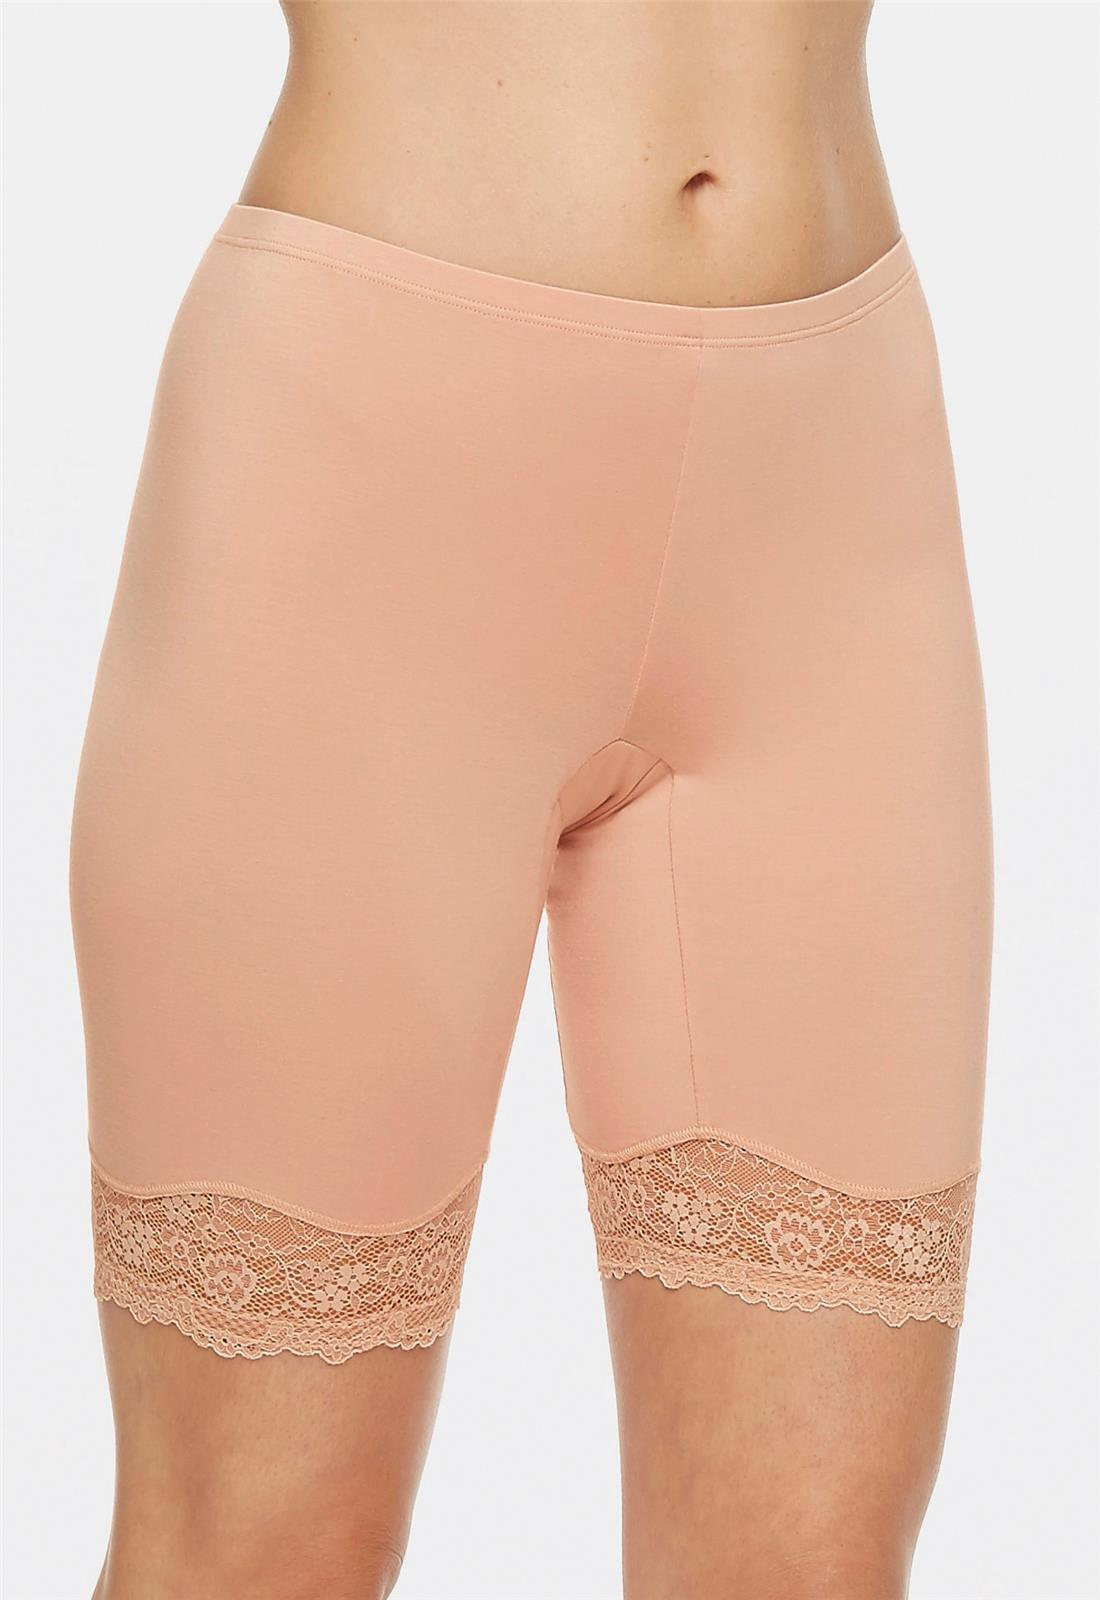 BodyBliss Breeze Collection Biker Short with Anti-chafing - L / REGT - Montelle Boutique